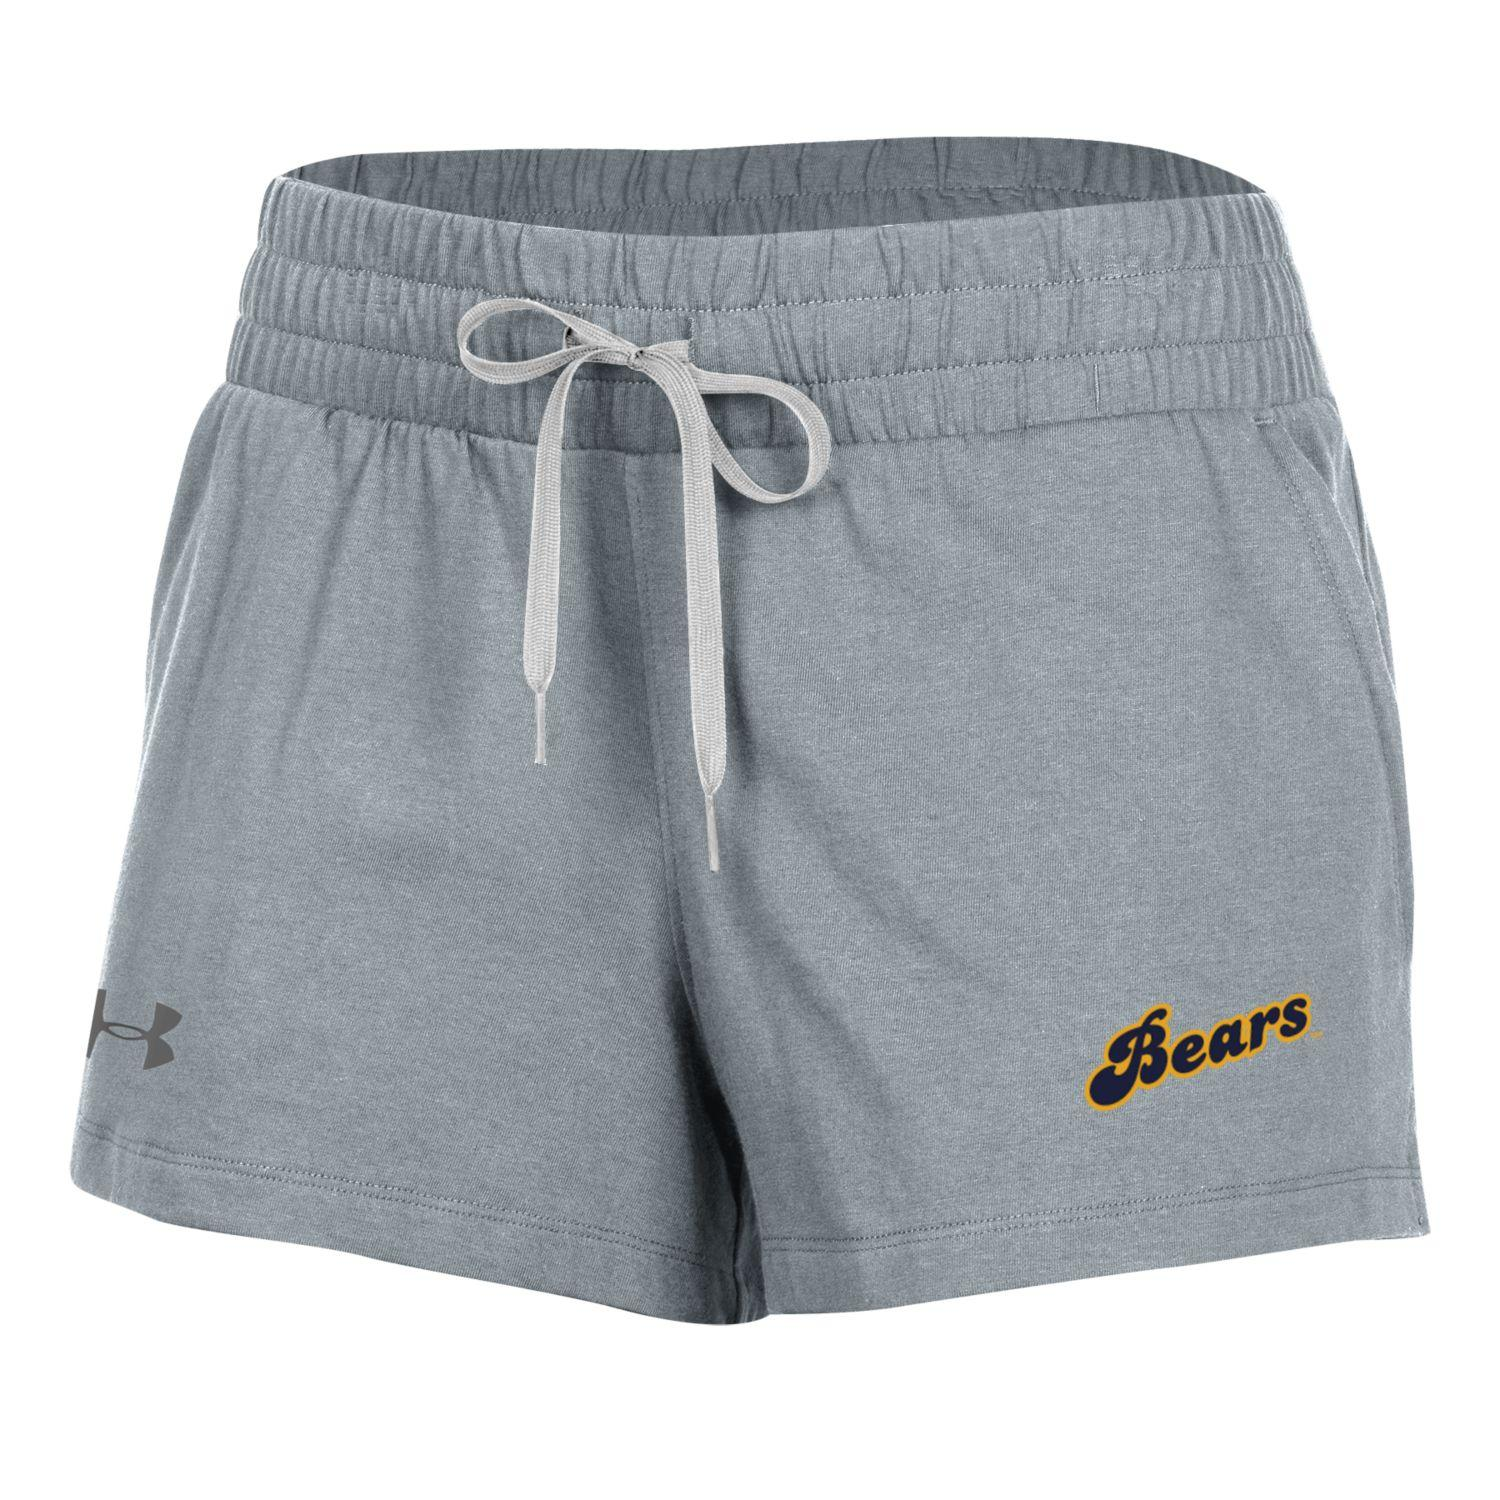 W F20 Performance Cotton Short